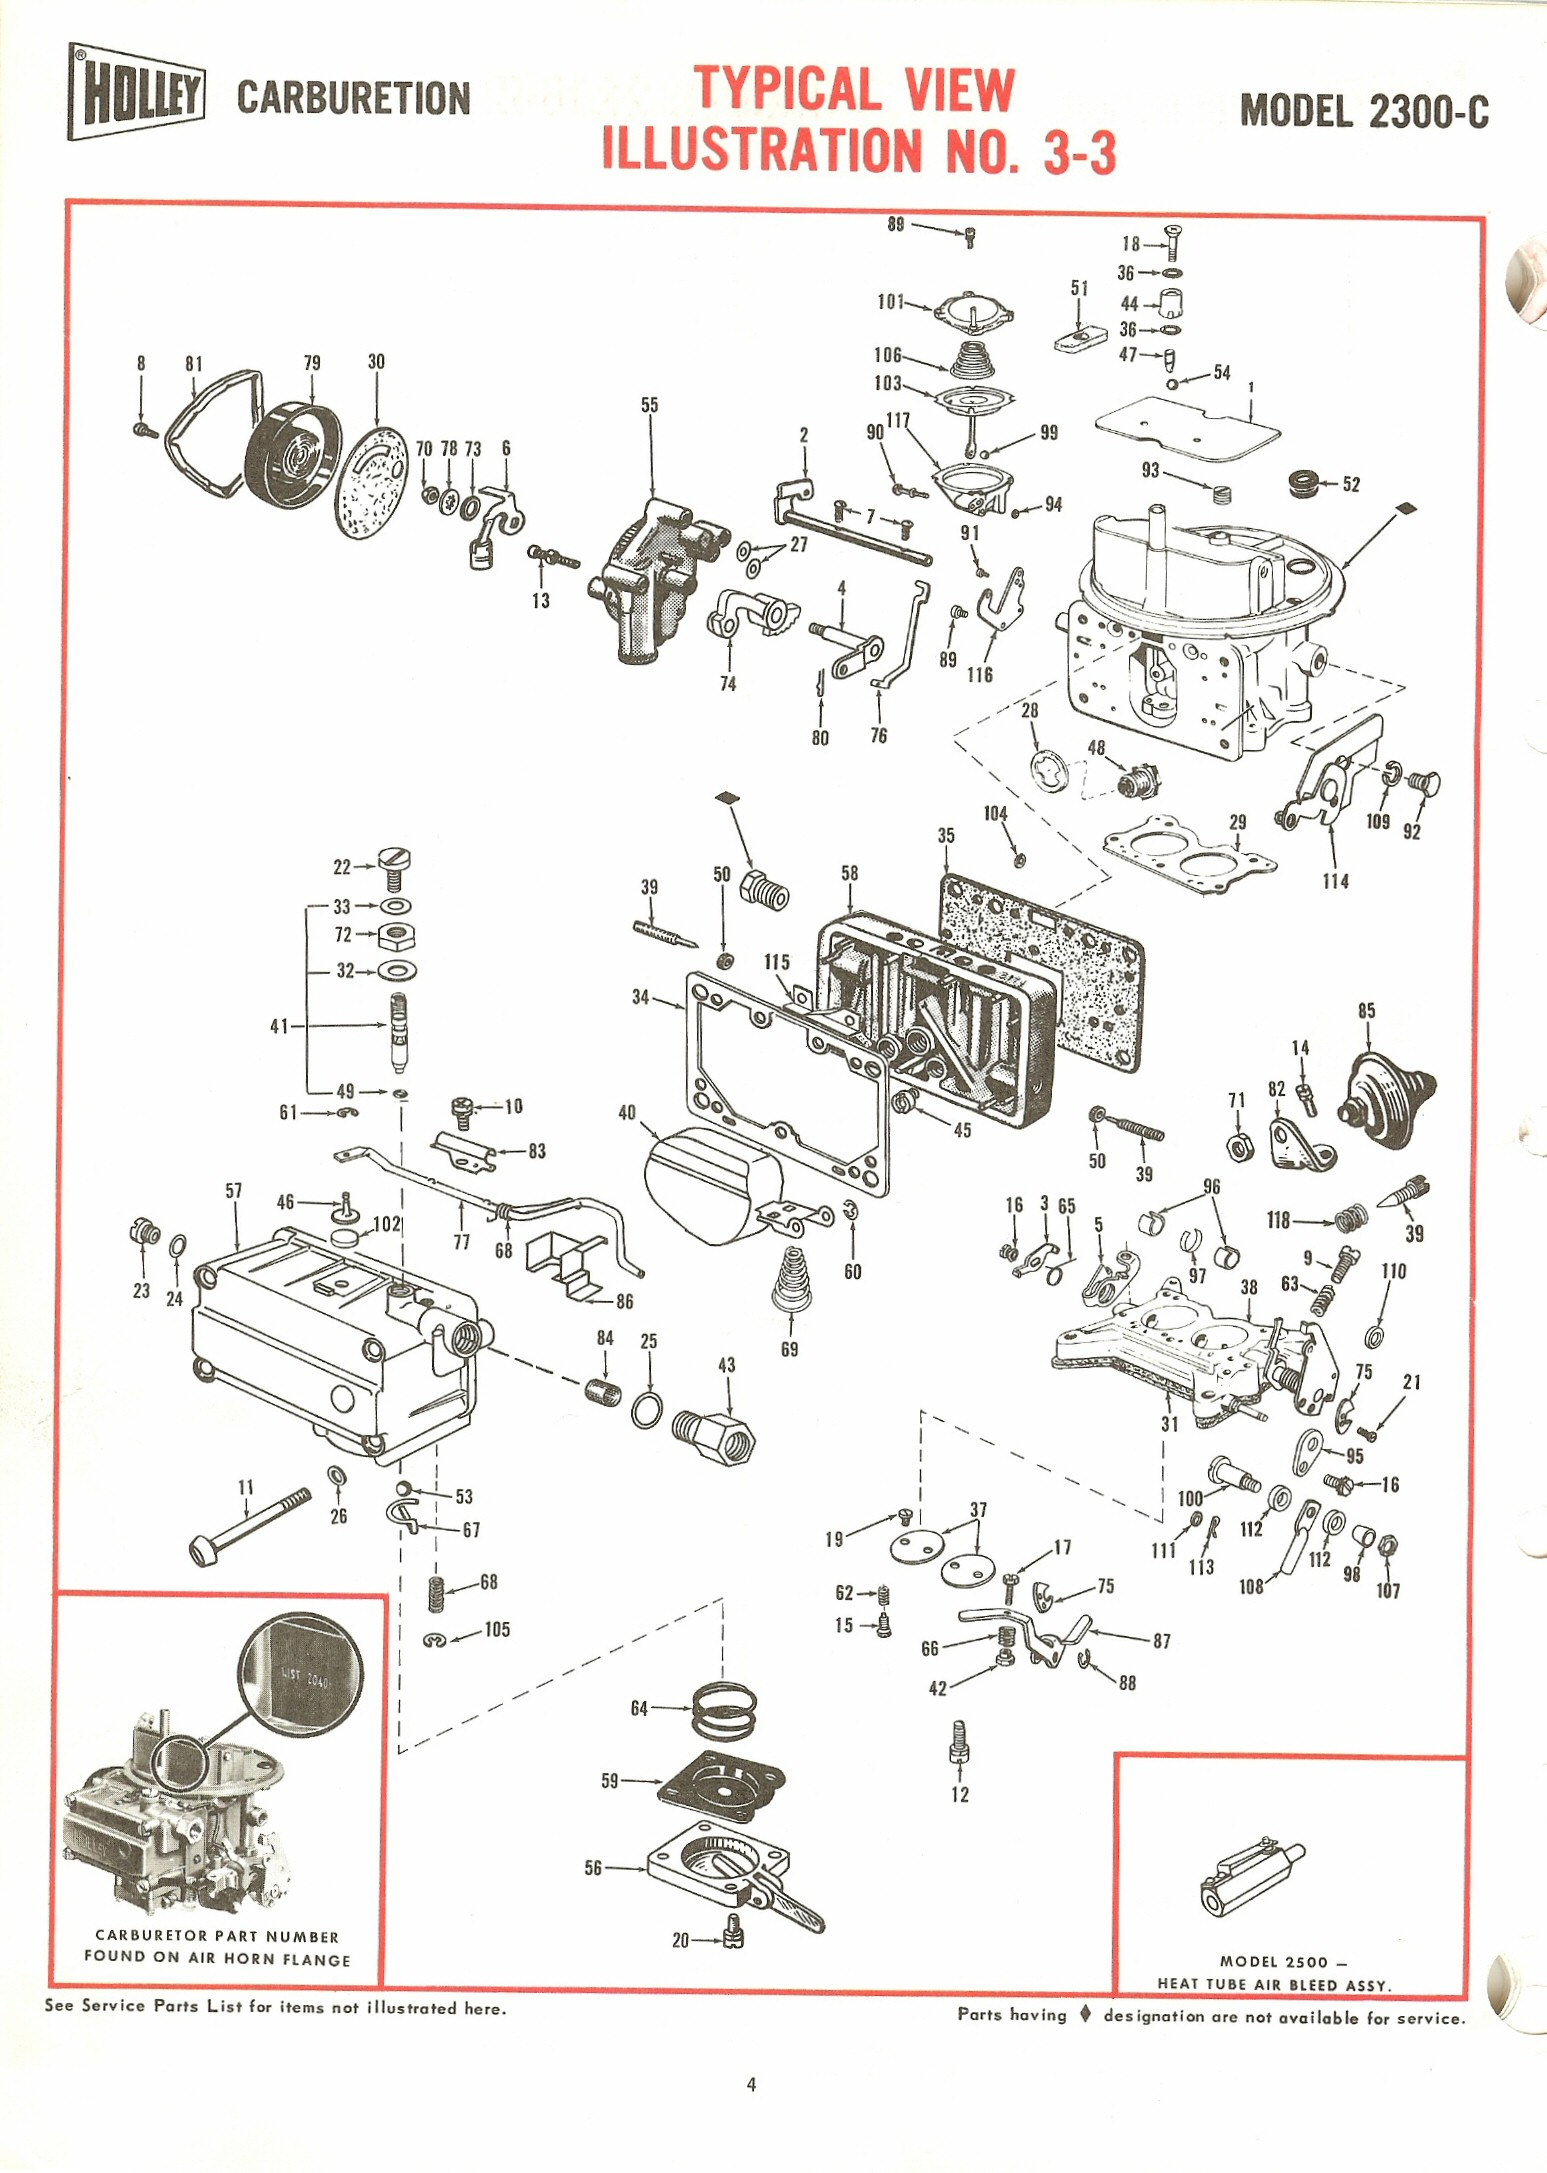 Holley 2300c Exploded Diagrams